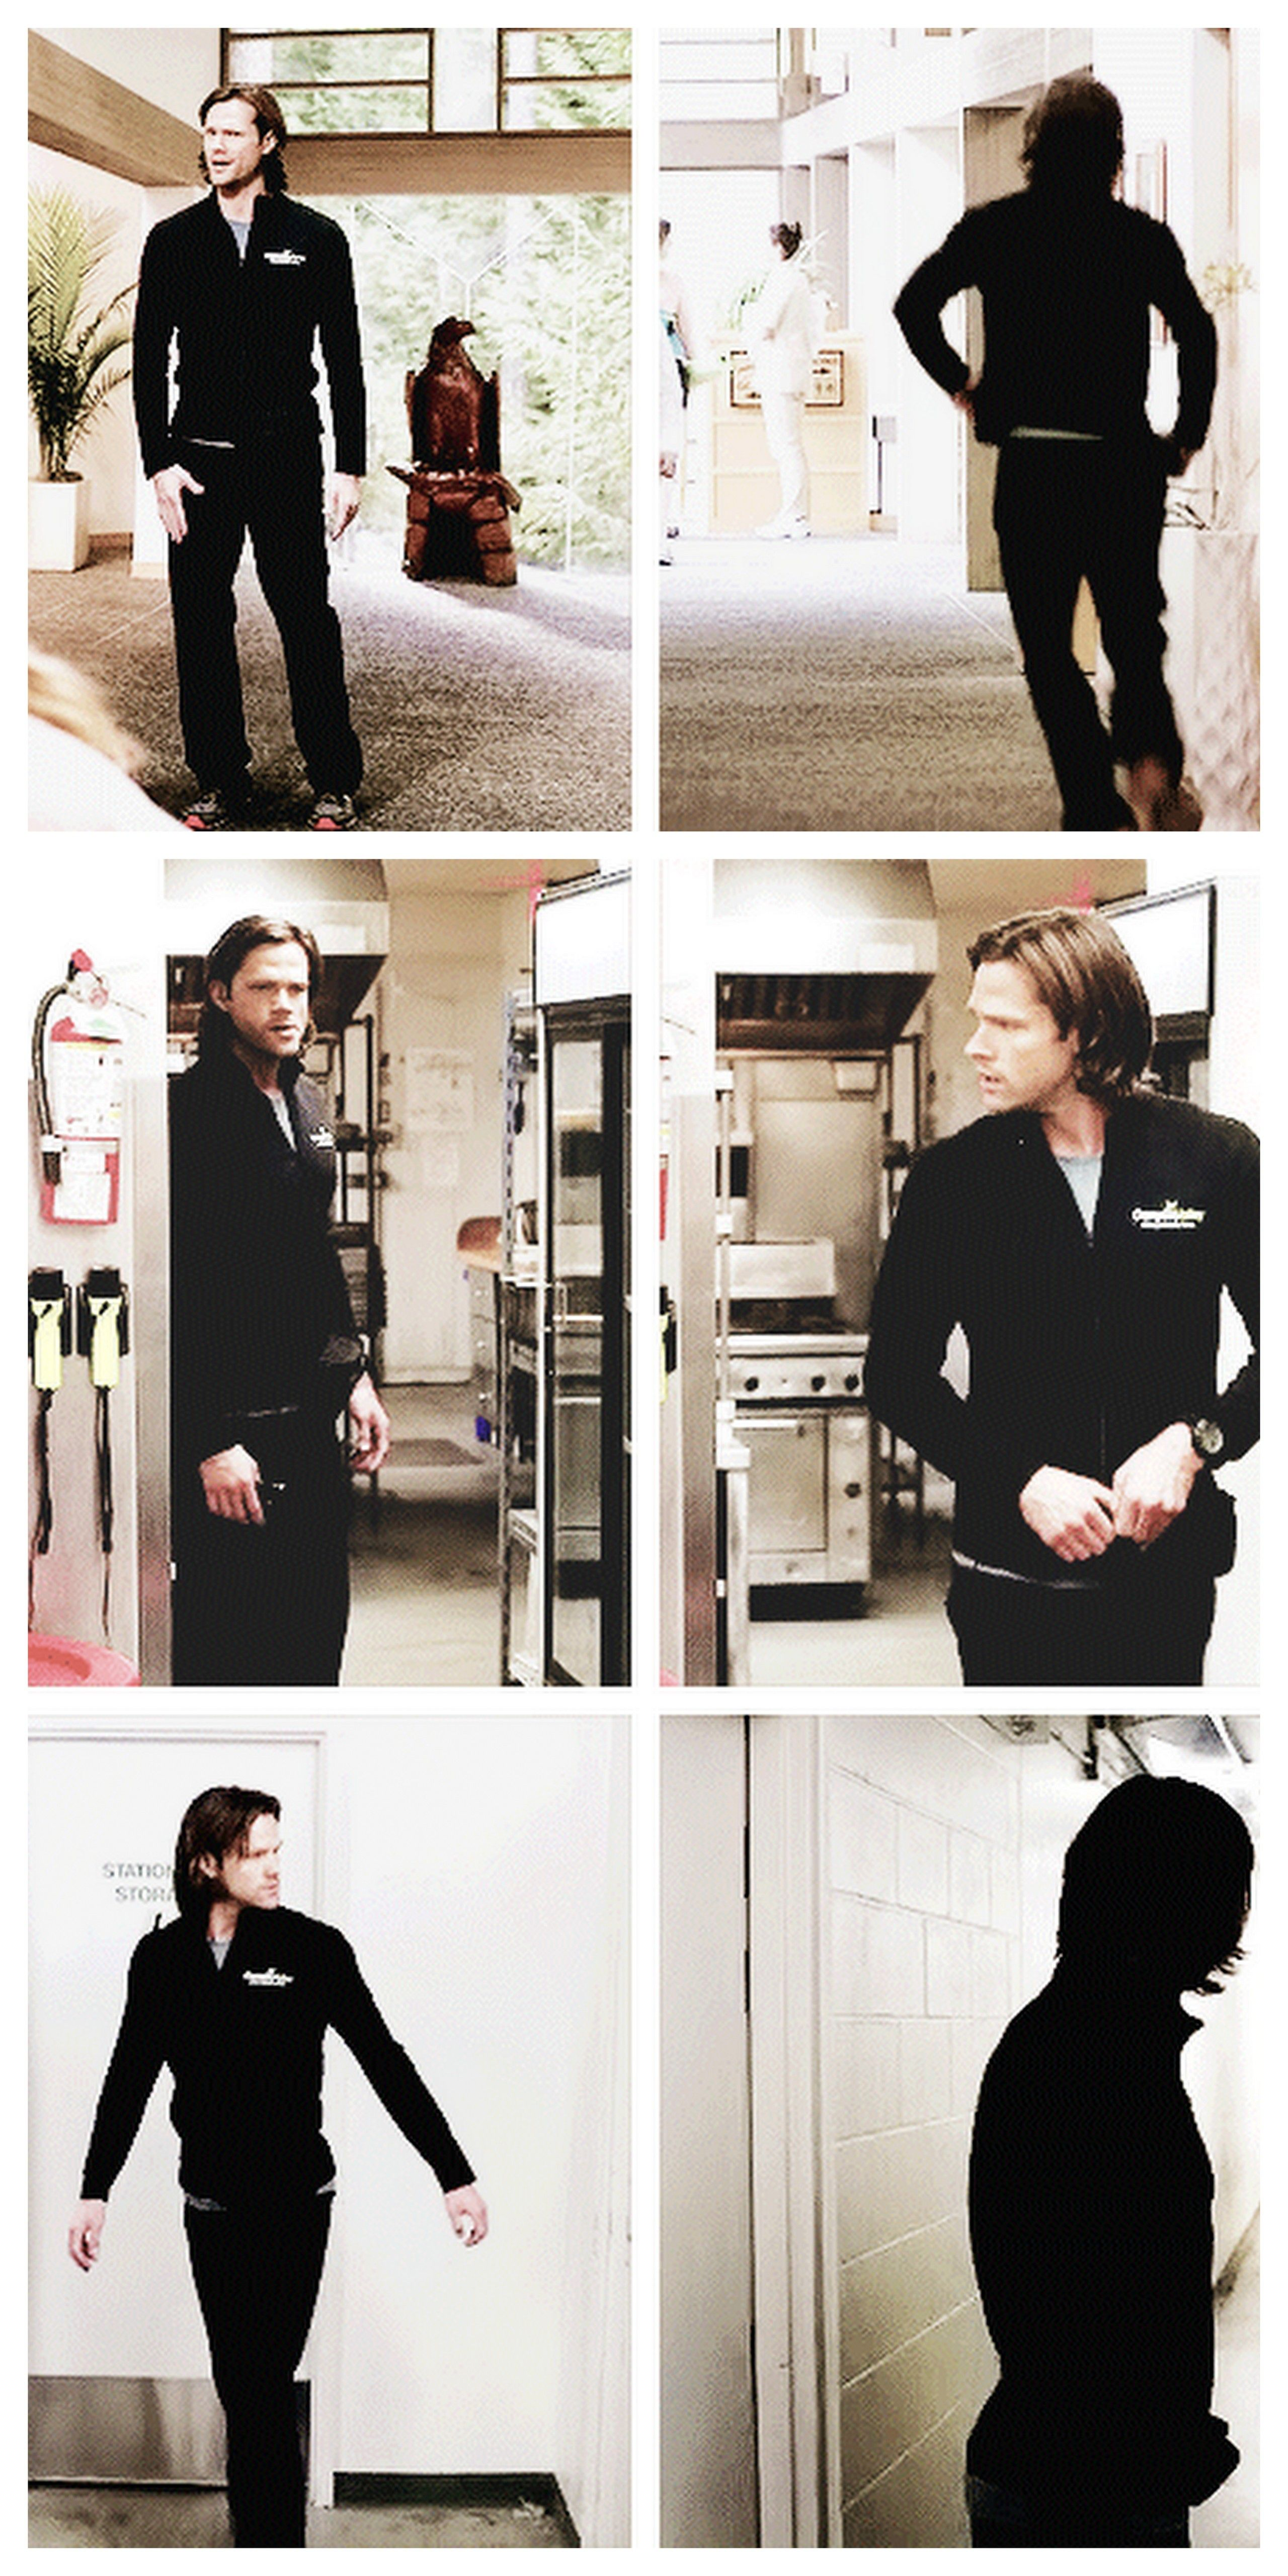 [gifset] - Sam - 9x13 The Purge (HOLY MOTHER OF GOD....Really, Sammy, you need to keep that tracksuit)